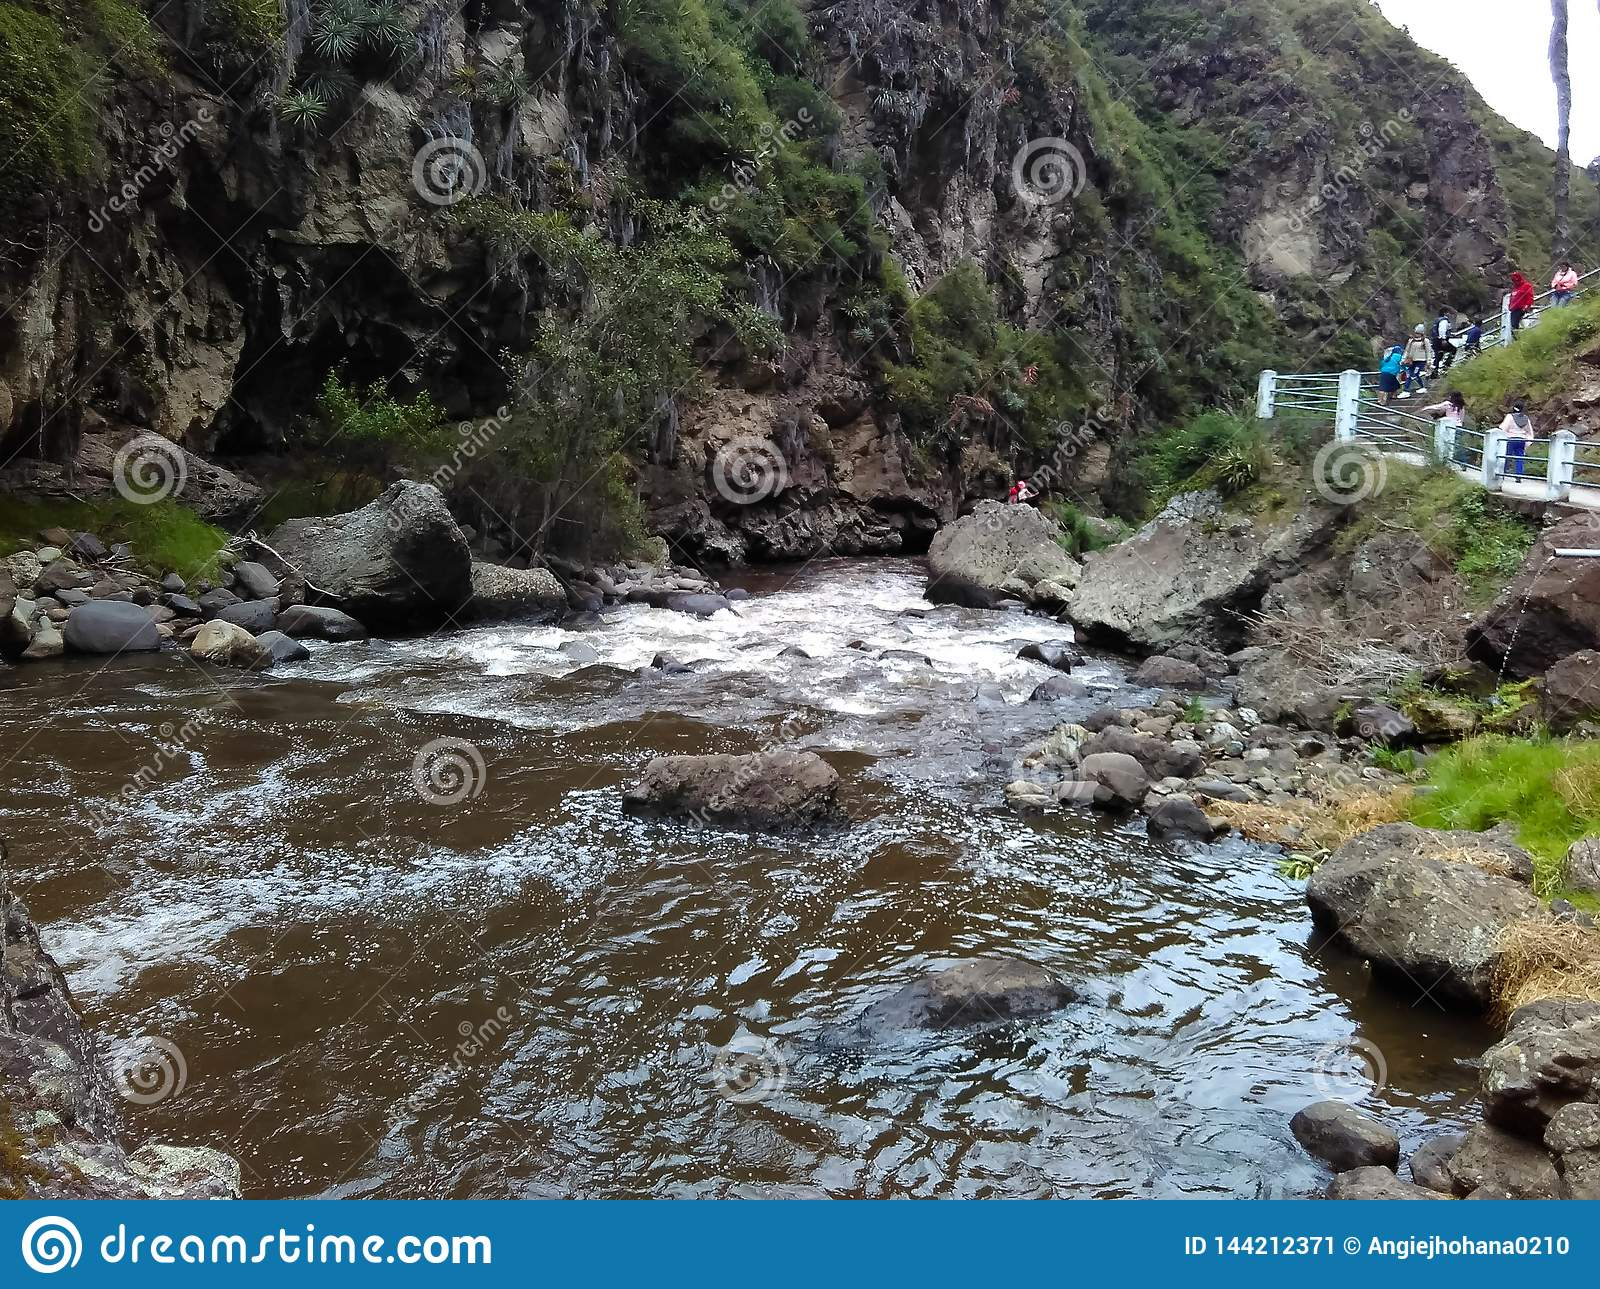 River running in a horizontal direction with rocks surrounding it